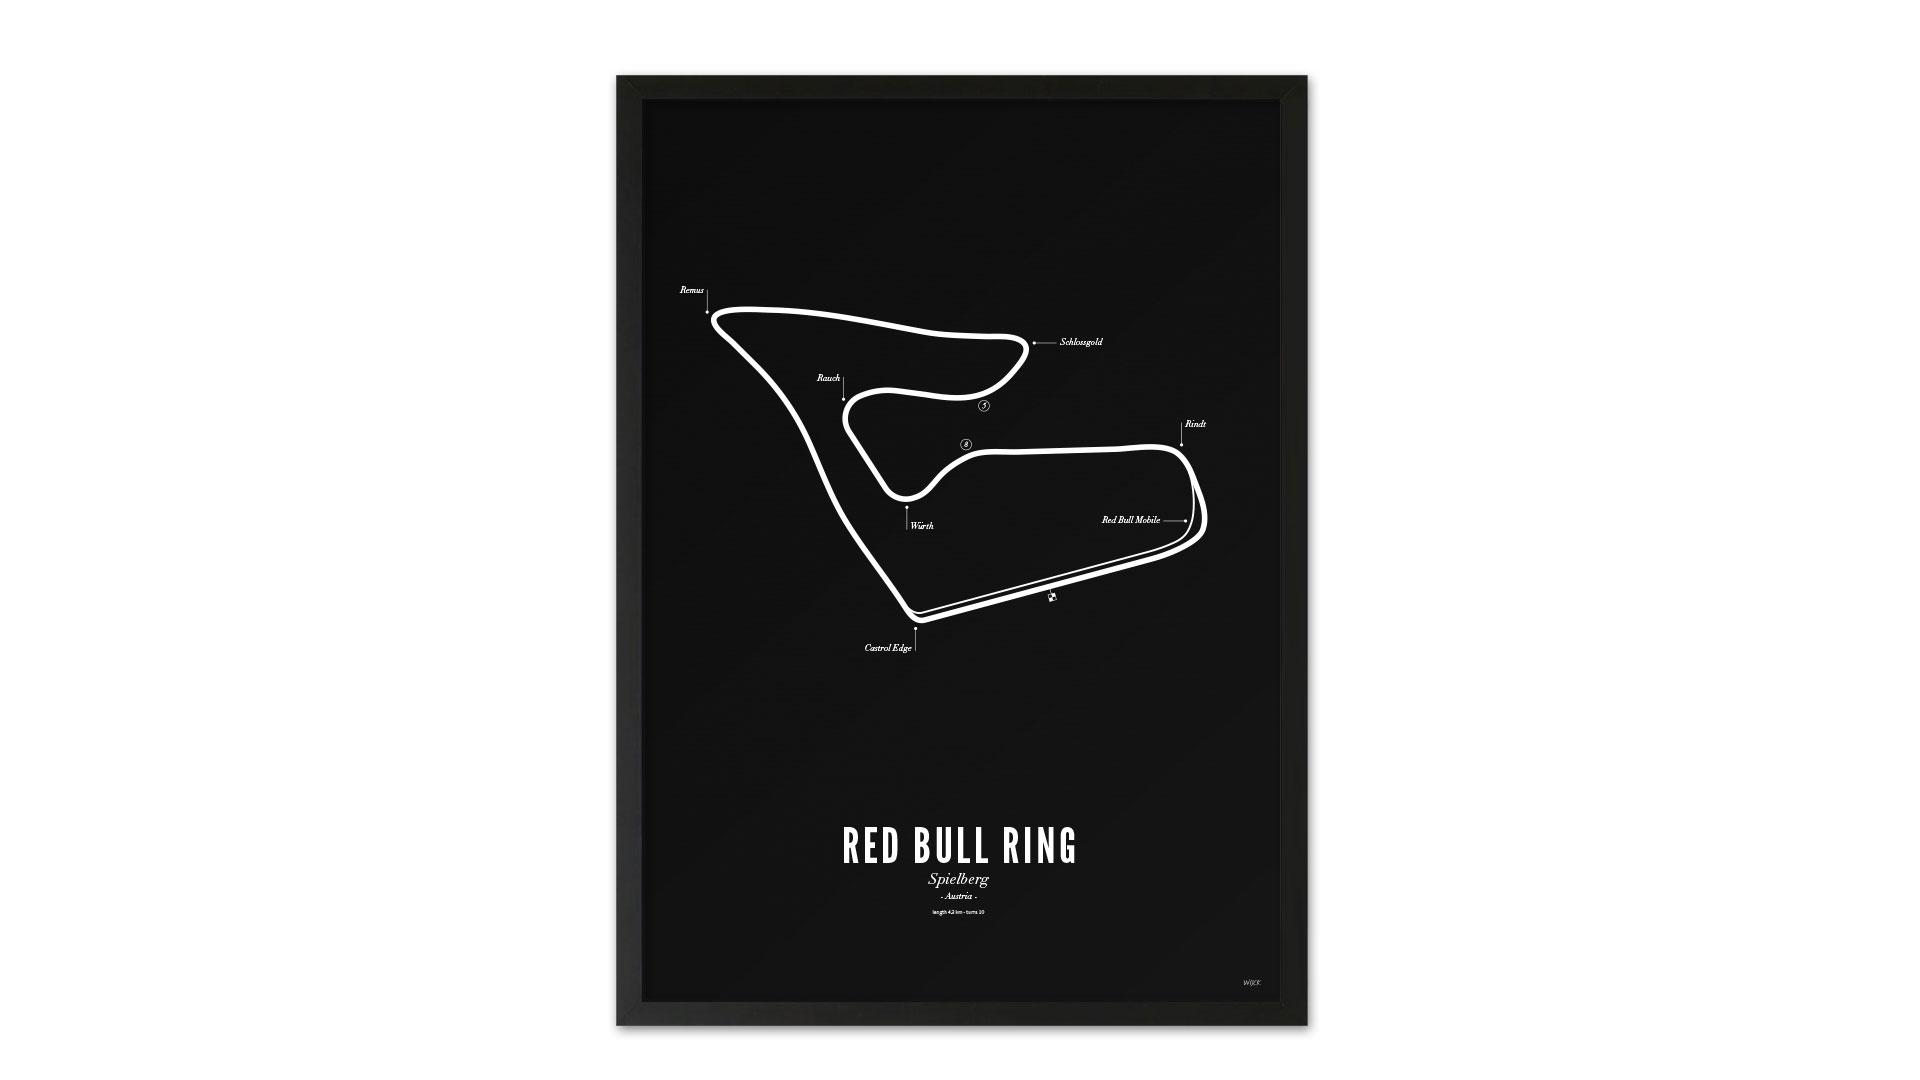 Red Bull Ring Spielberg poster